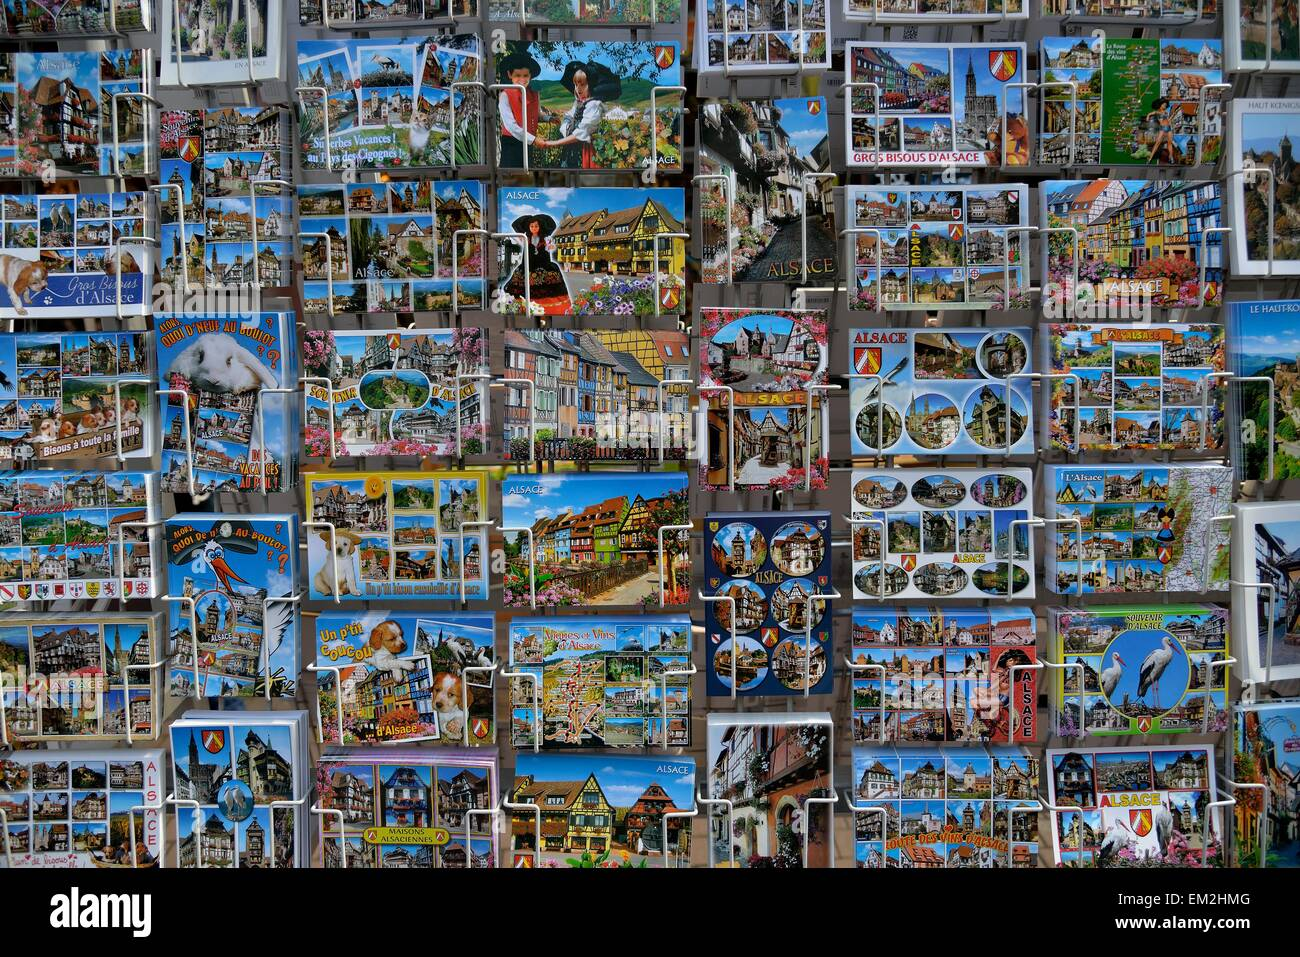 Postcard stand with Alsace postcards, Obernai, Bas-Rhin, Alsace, France - Stock Image